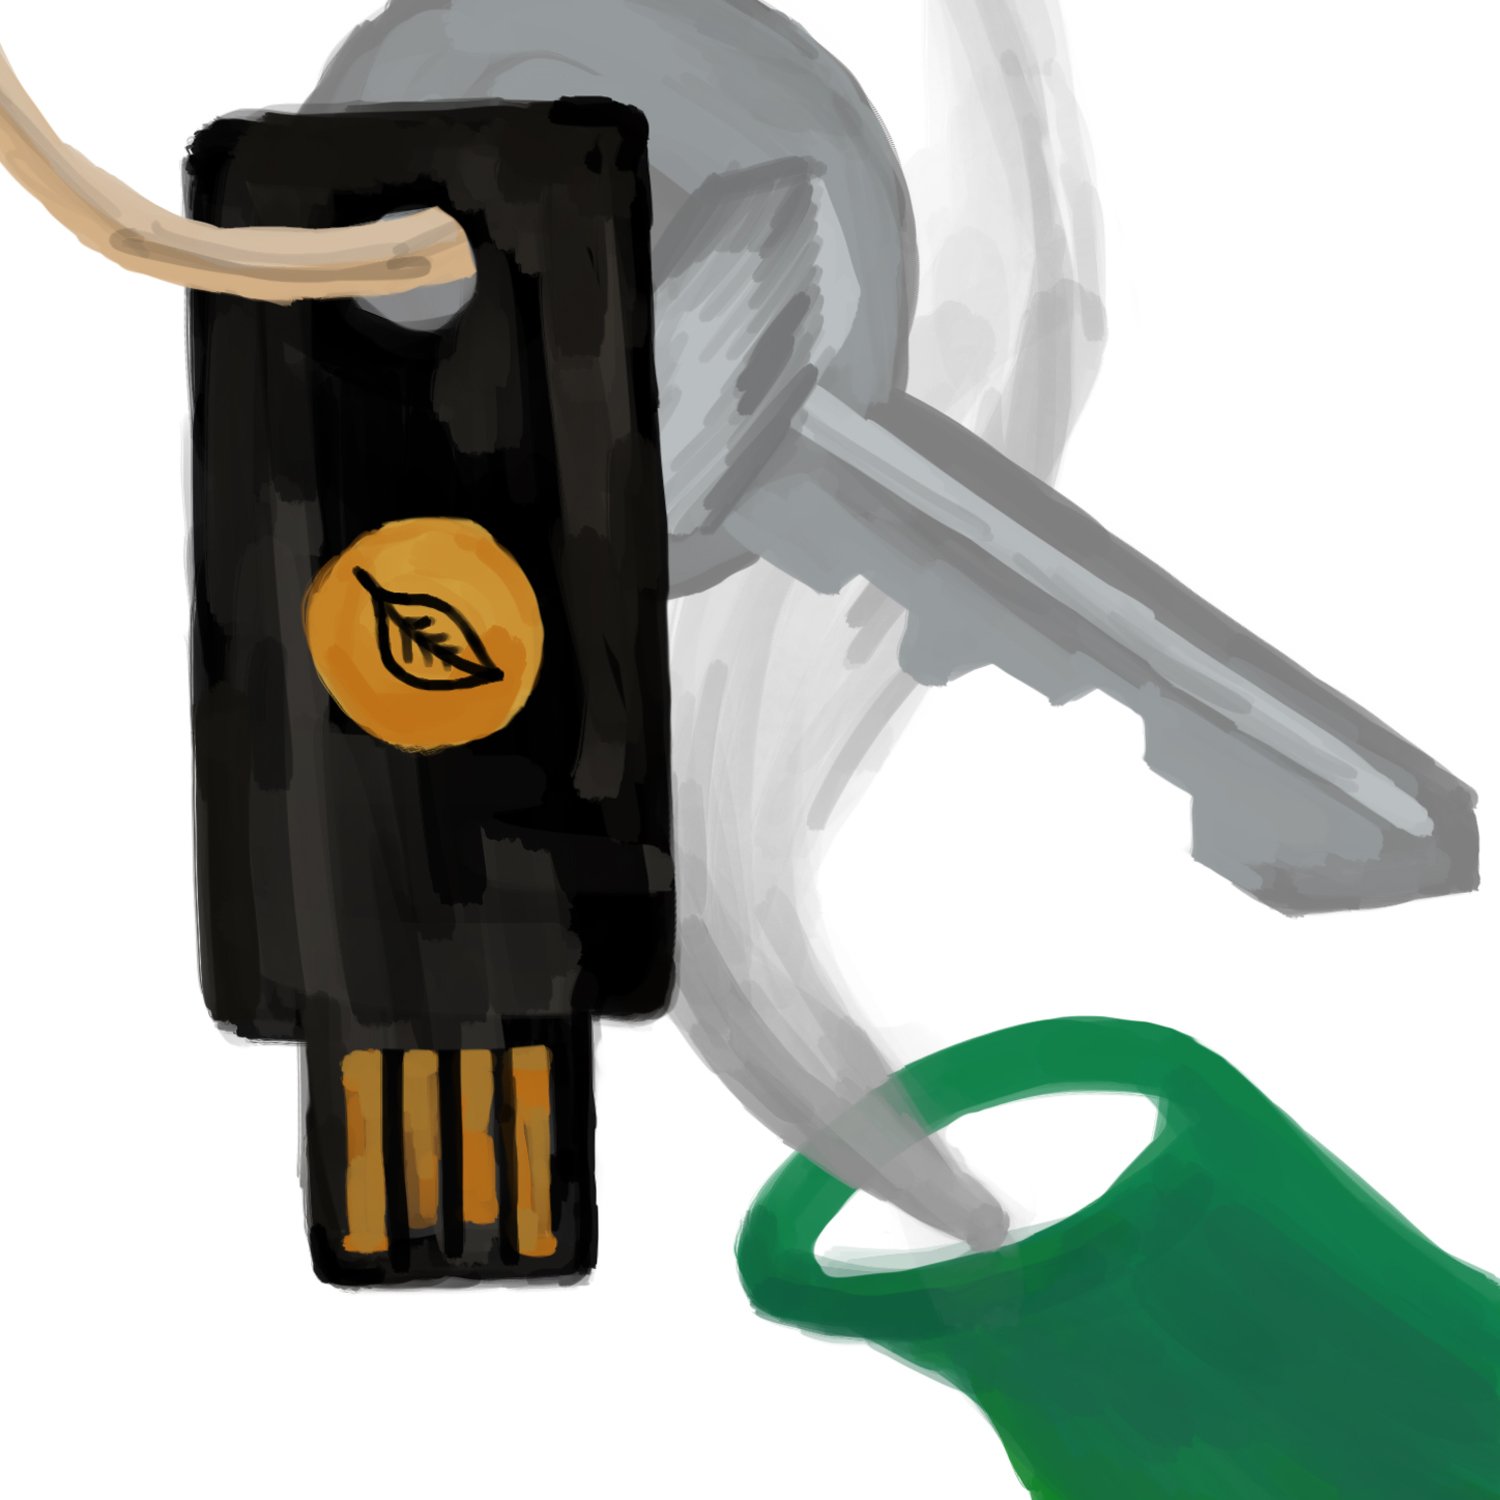 Security key on a keychain near steam coming out of a teapot